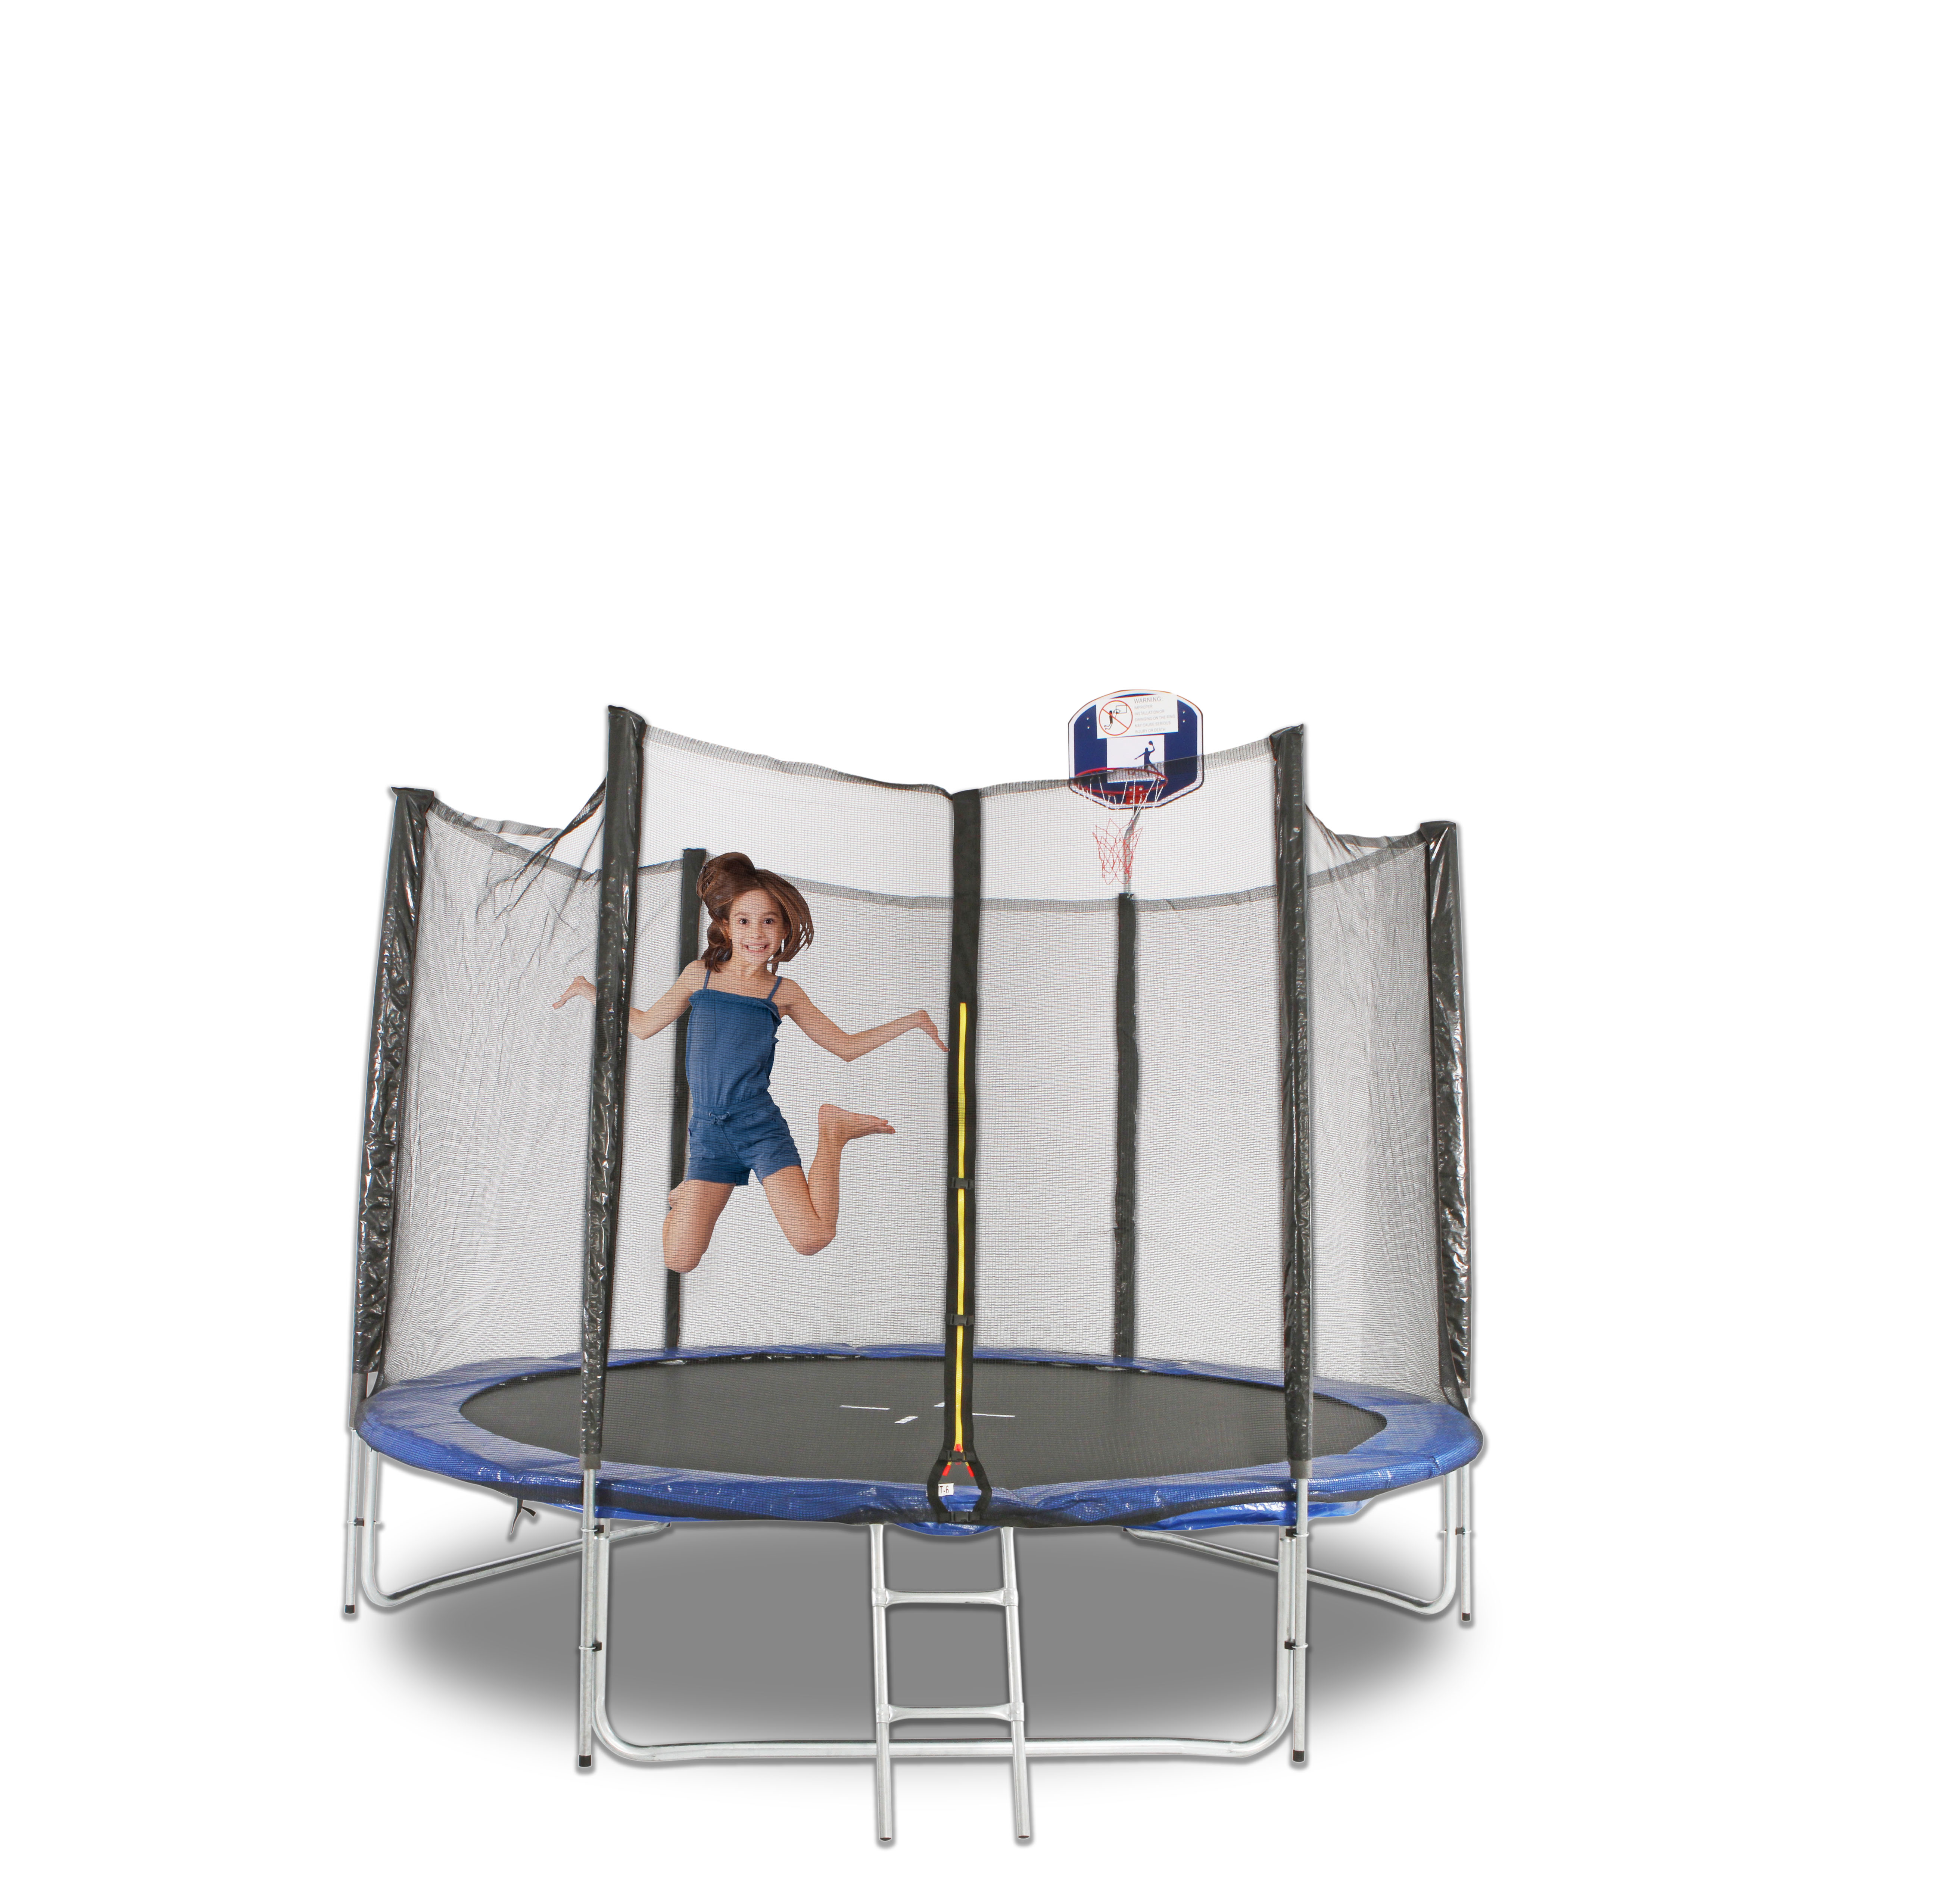 10FT ROUND TRAMPOLINE FREE Basketball Set Safety Net